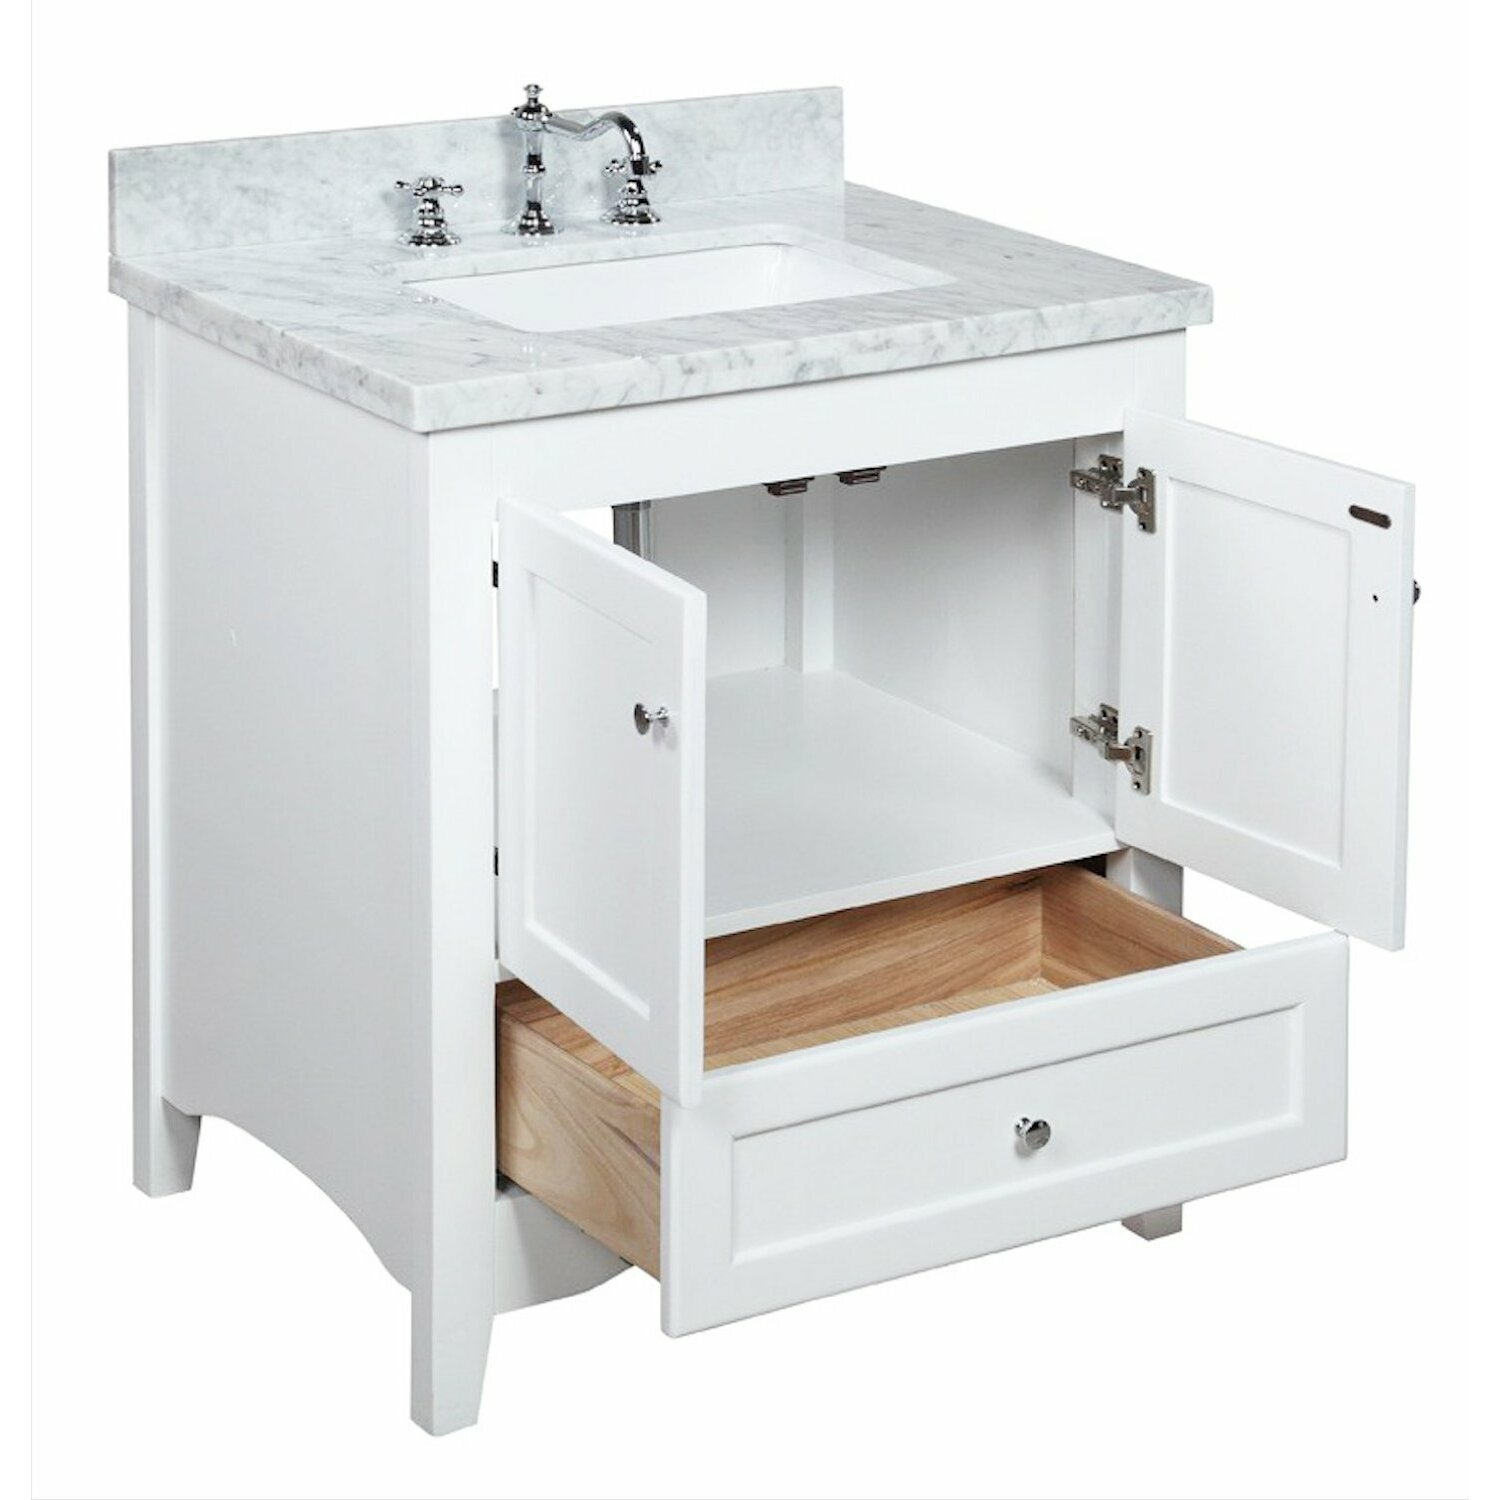 Kbc abbey 30 single bathroom vanity set reviews wayfair for Bathroom vanities